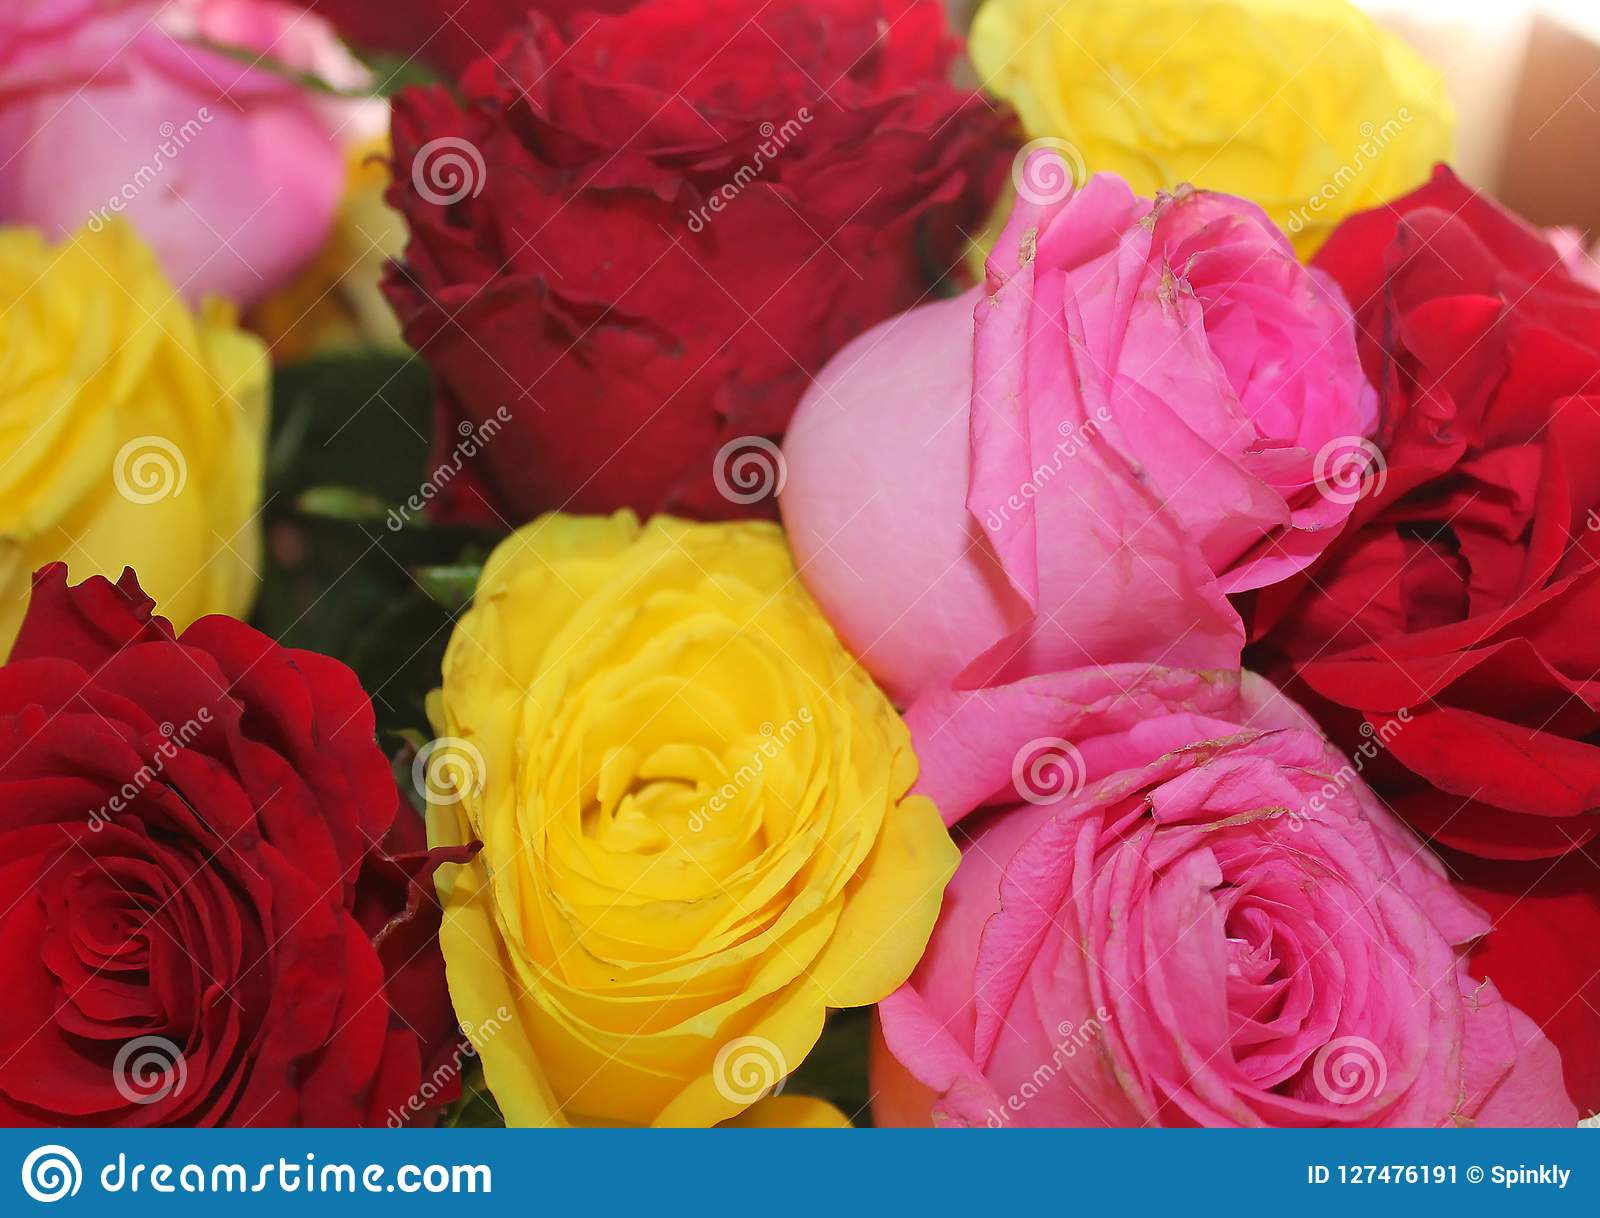 Background Wallpaper Rose Flower Images